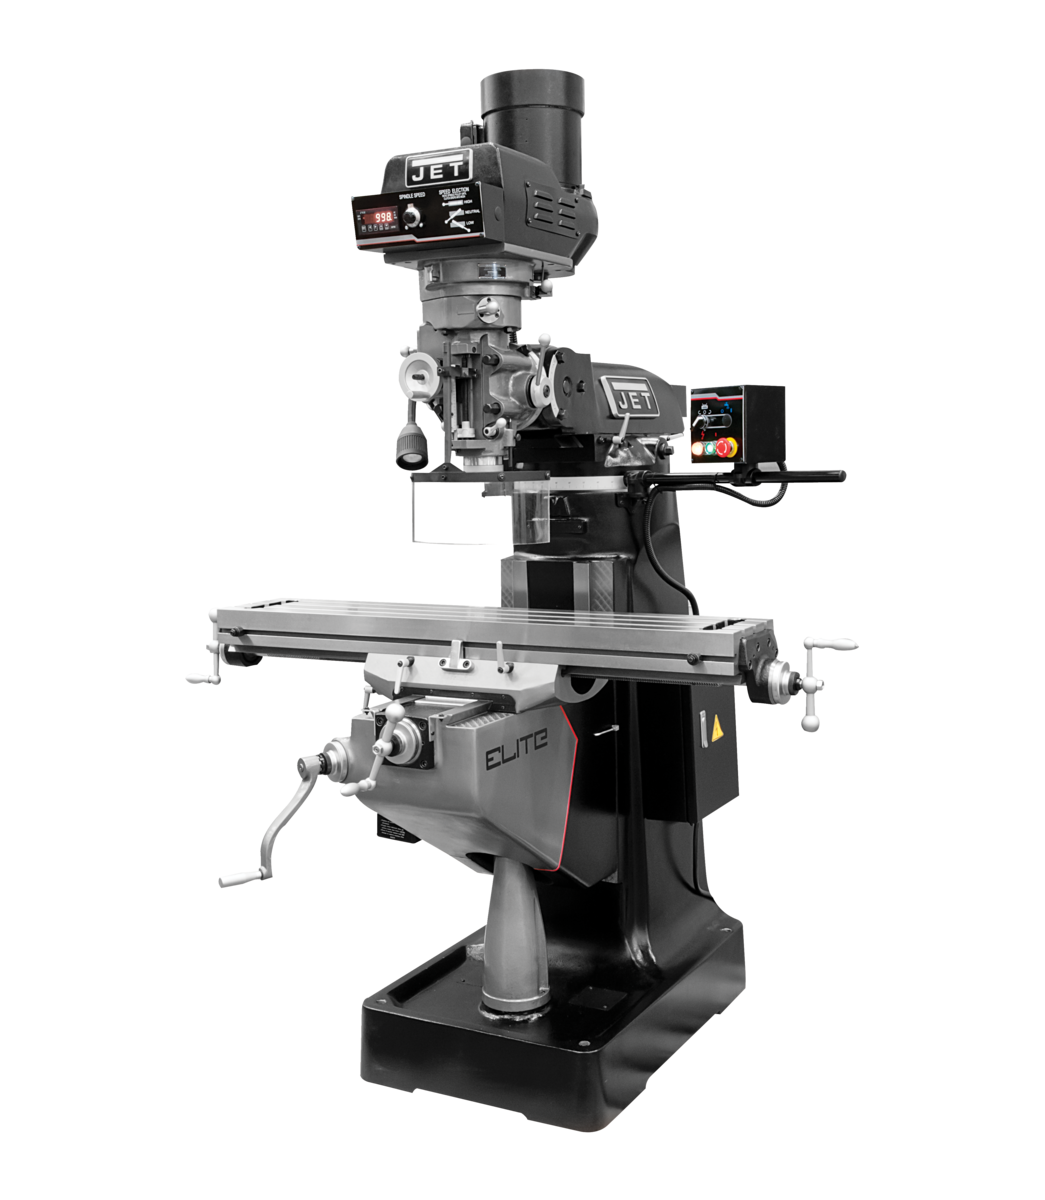 EVS-949 Mill with 3-Axis ACU-RITE 303 (Quill) DRO and X-Axis JET Powerfeed